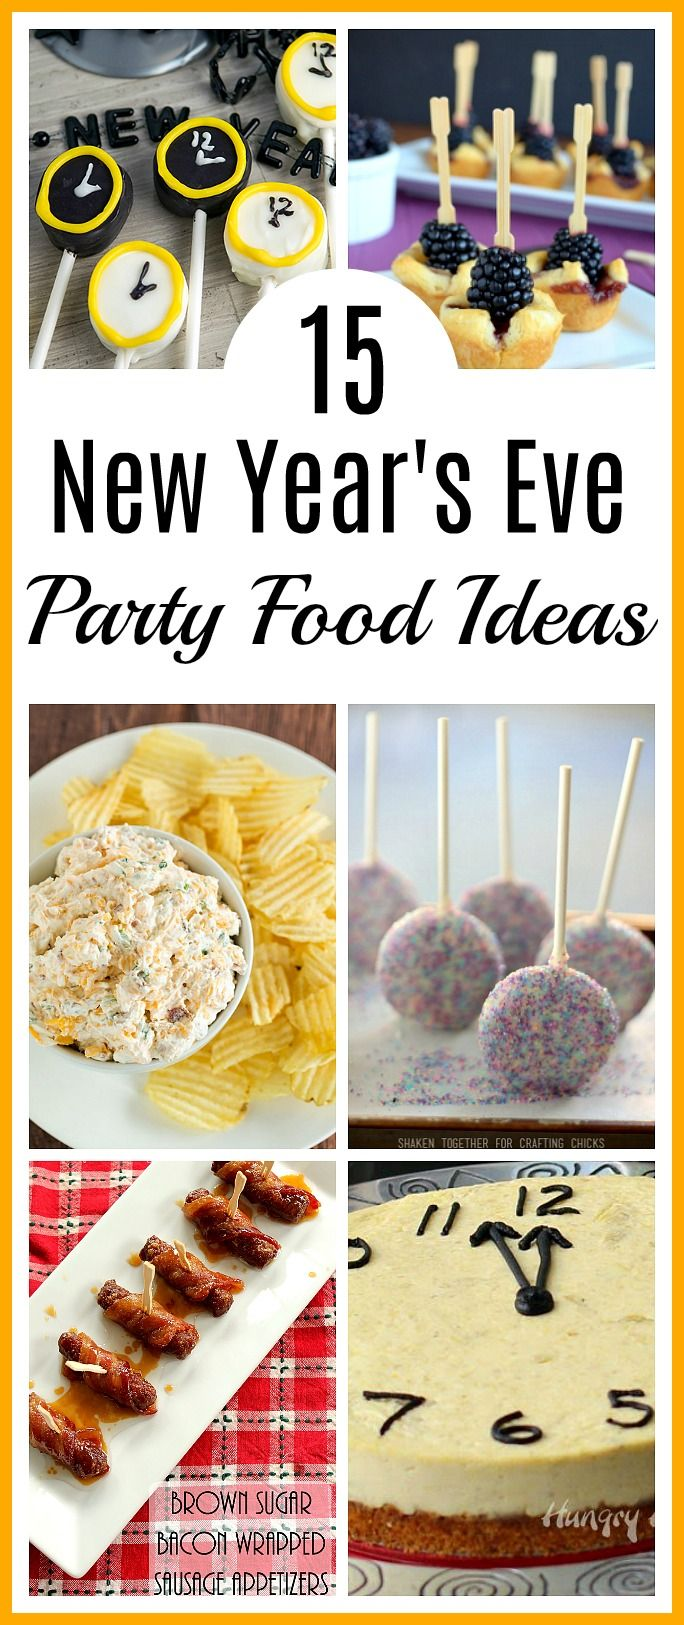 15 New Year's Eve Party Food Ideas- Bring in the New Year the tasty way with these 15 delicious New Year's Eve party food ideas! You and your guests will love these recipes! #NewYearsEve #recipe #appetizer #partyFood